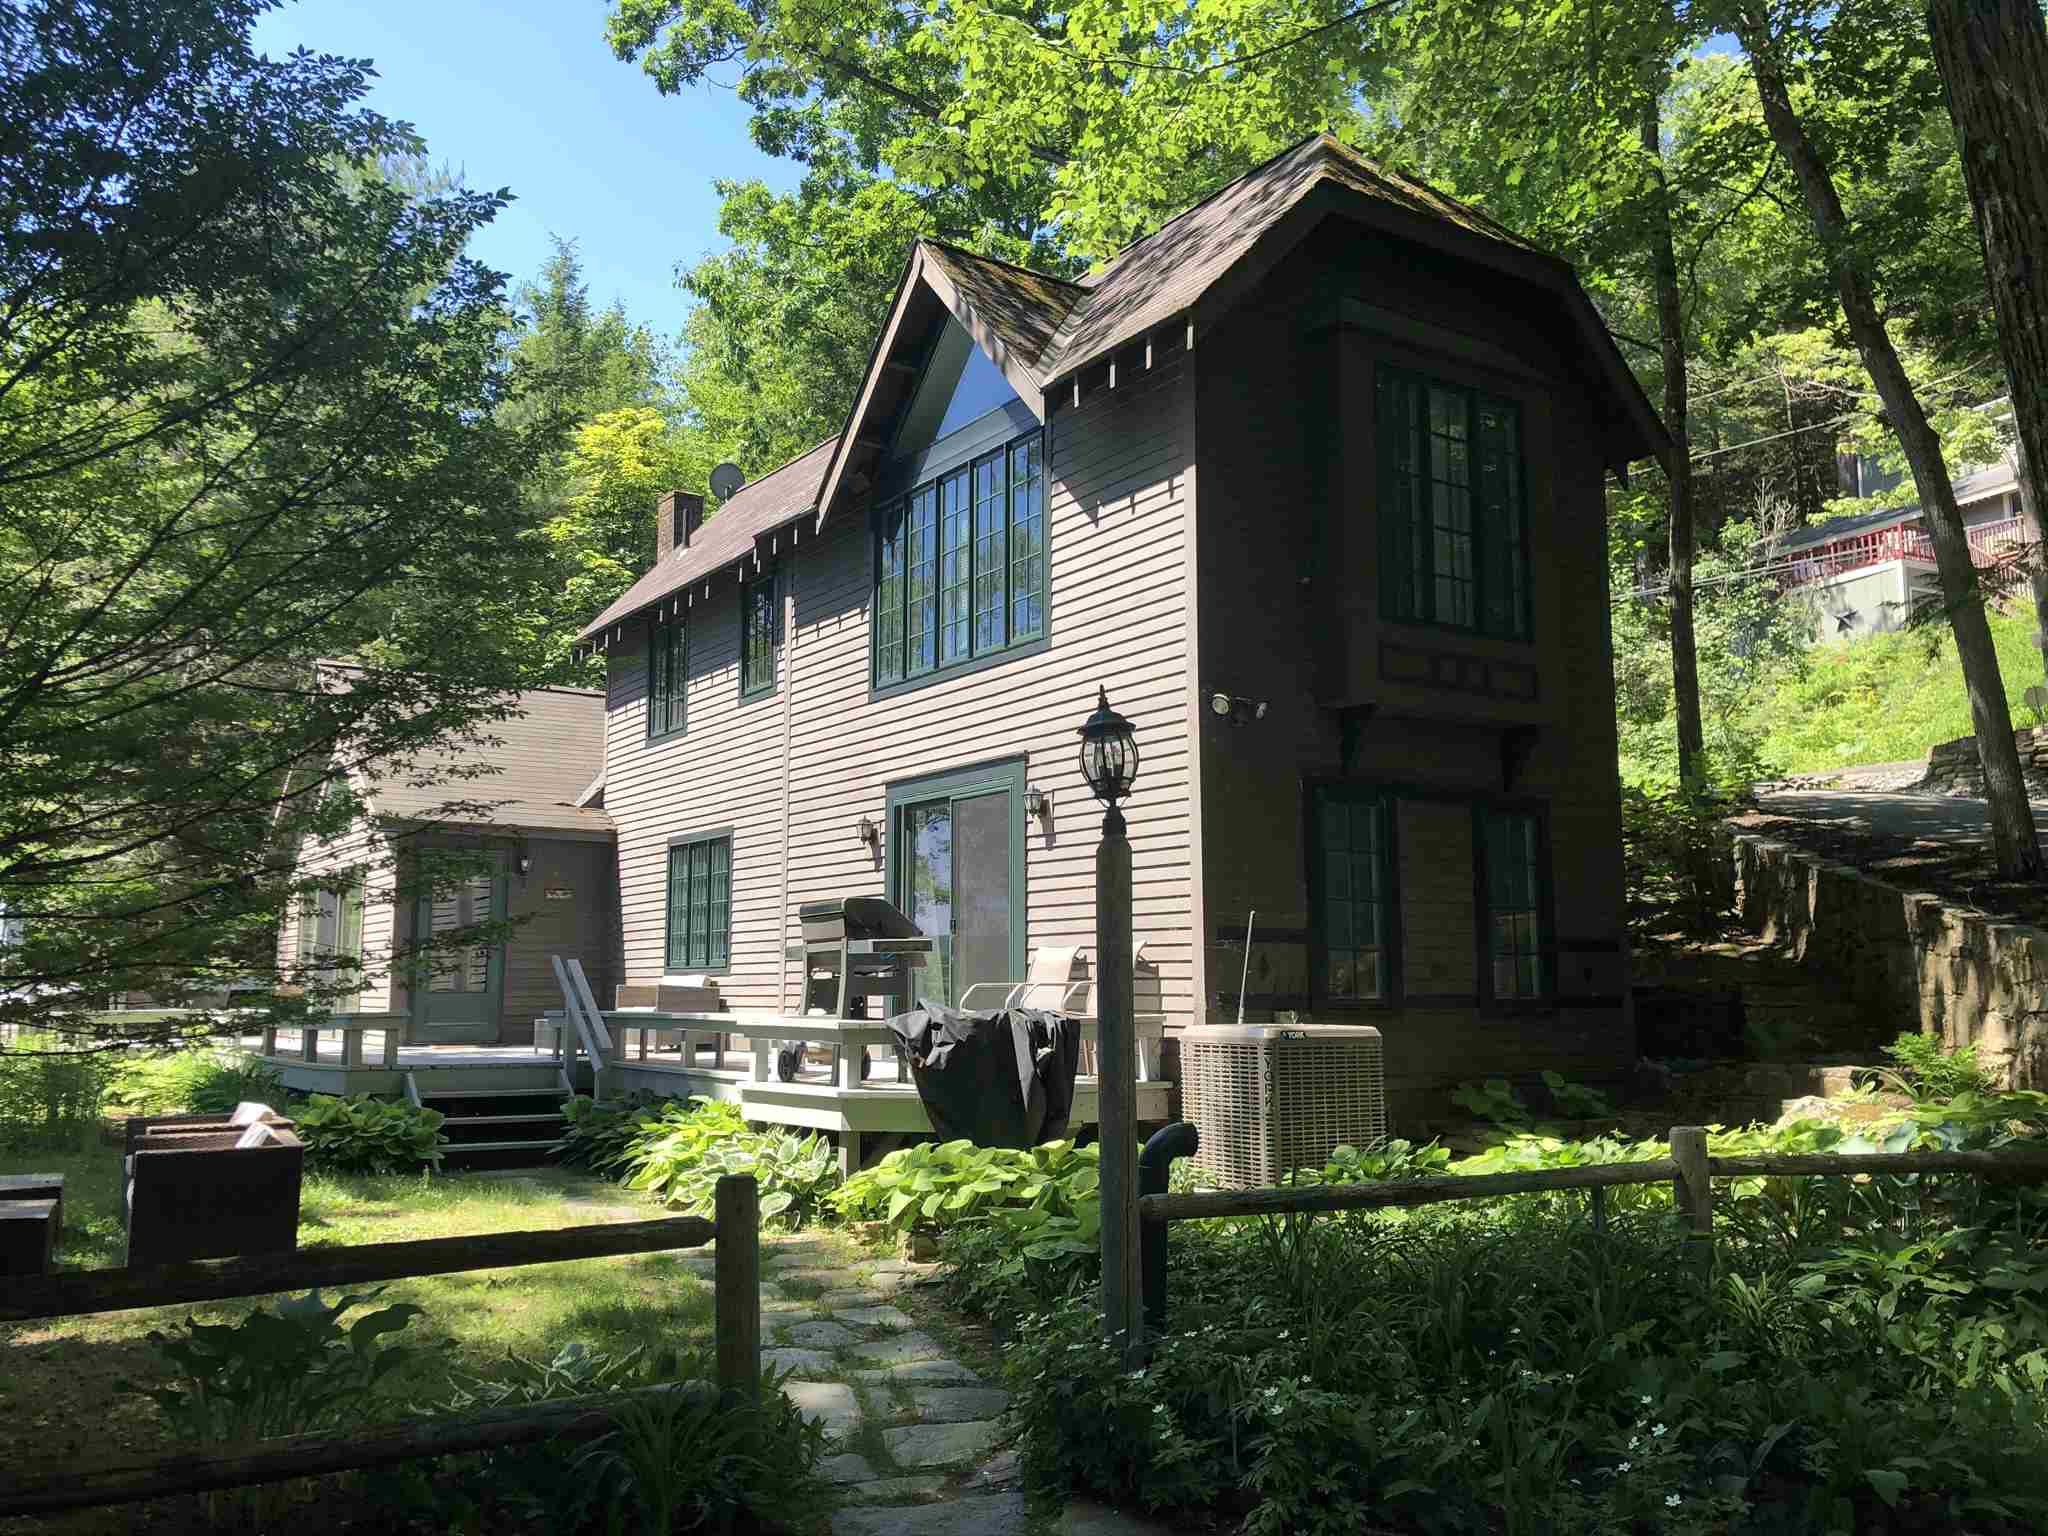 96 North Shore Road, Chesterfield, NH 03462